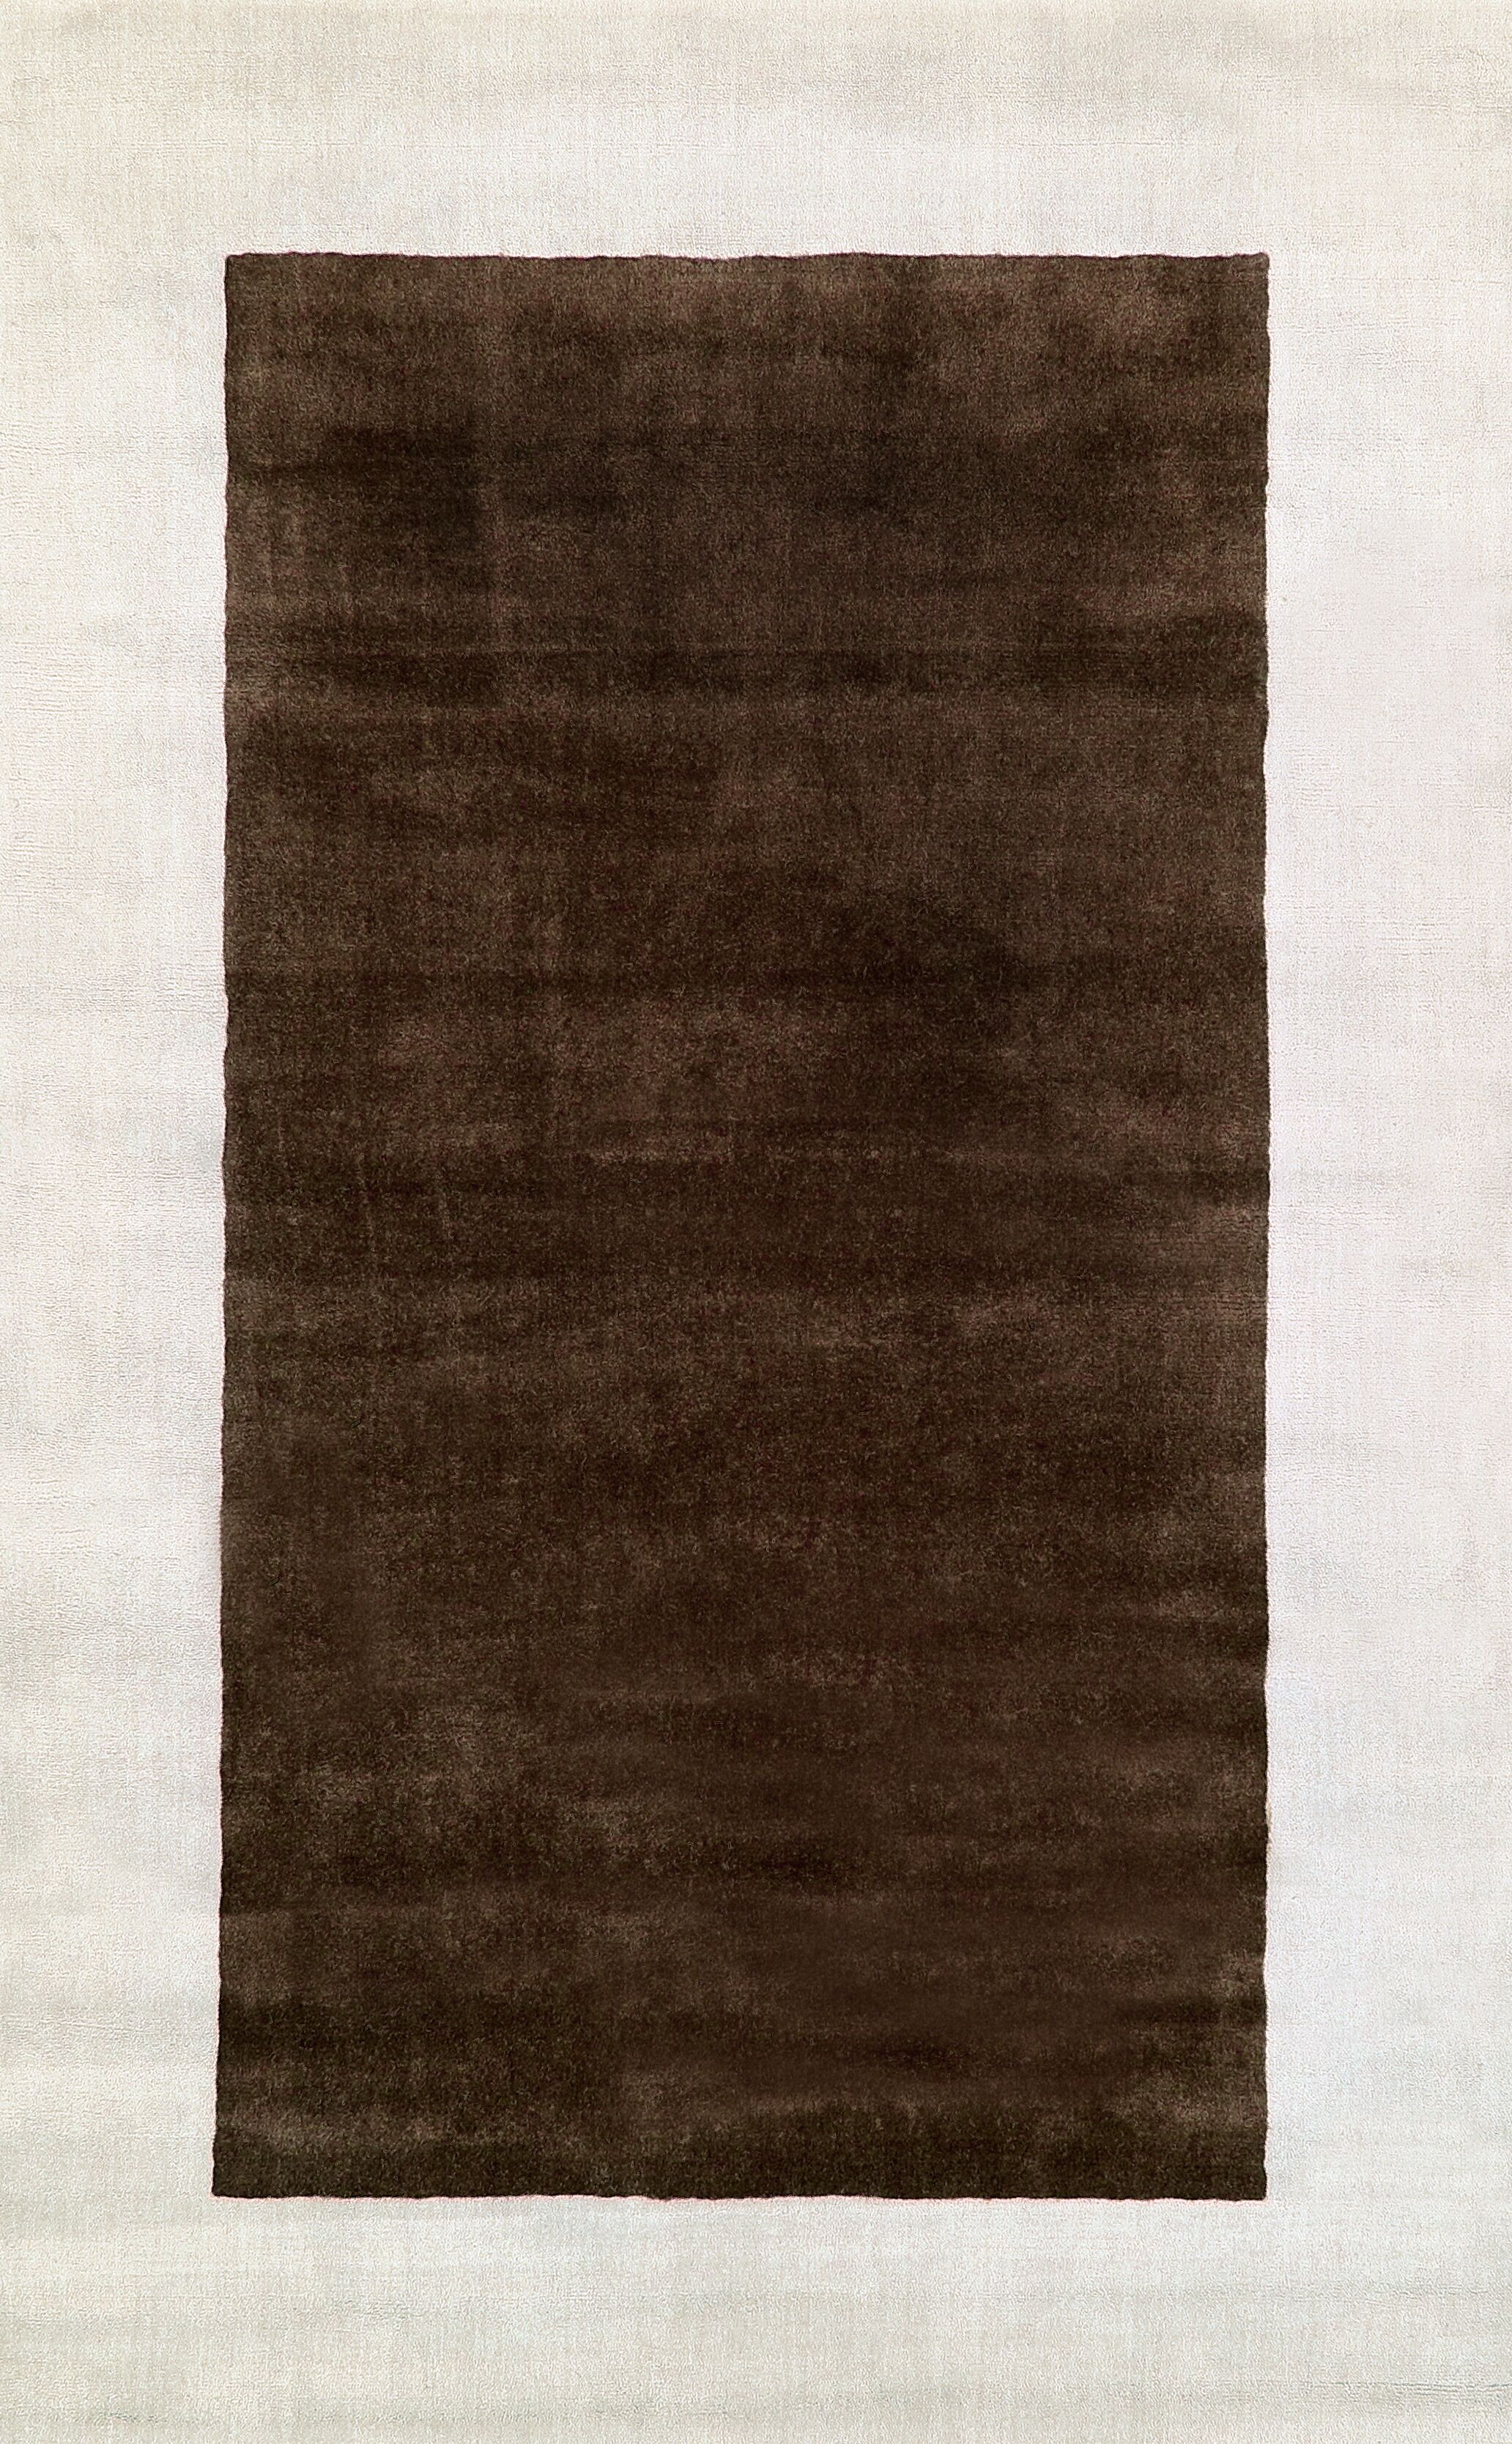 Occhena Hand-Woven Wool Brown Area Rug Rug Size: Rectangle 7'6